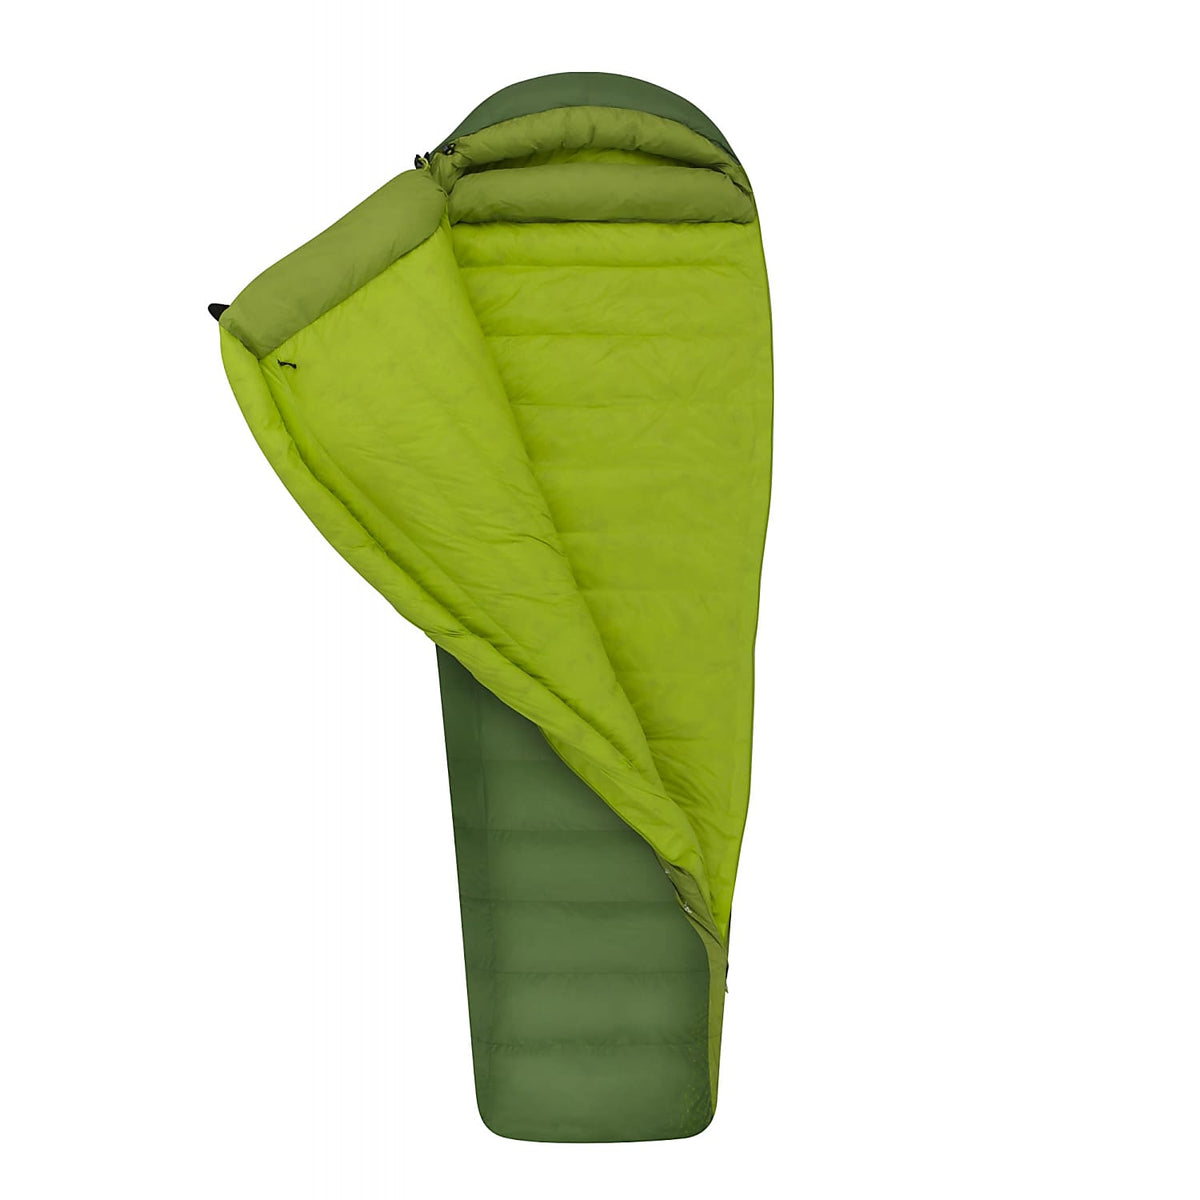 Sea to Summit Ascent III sleeping bag, shown 3/4 open with lime green lining